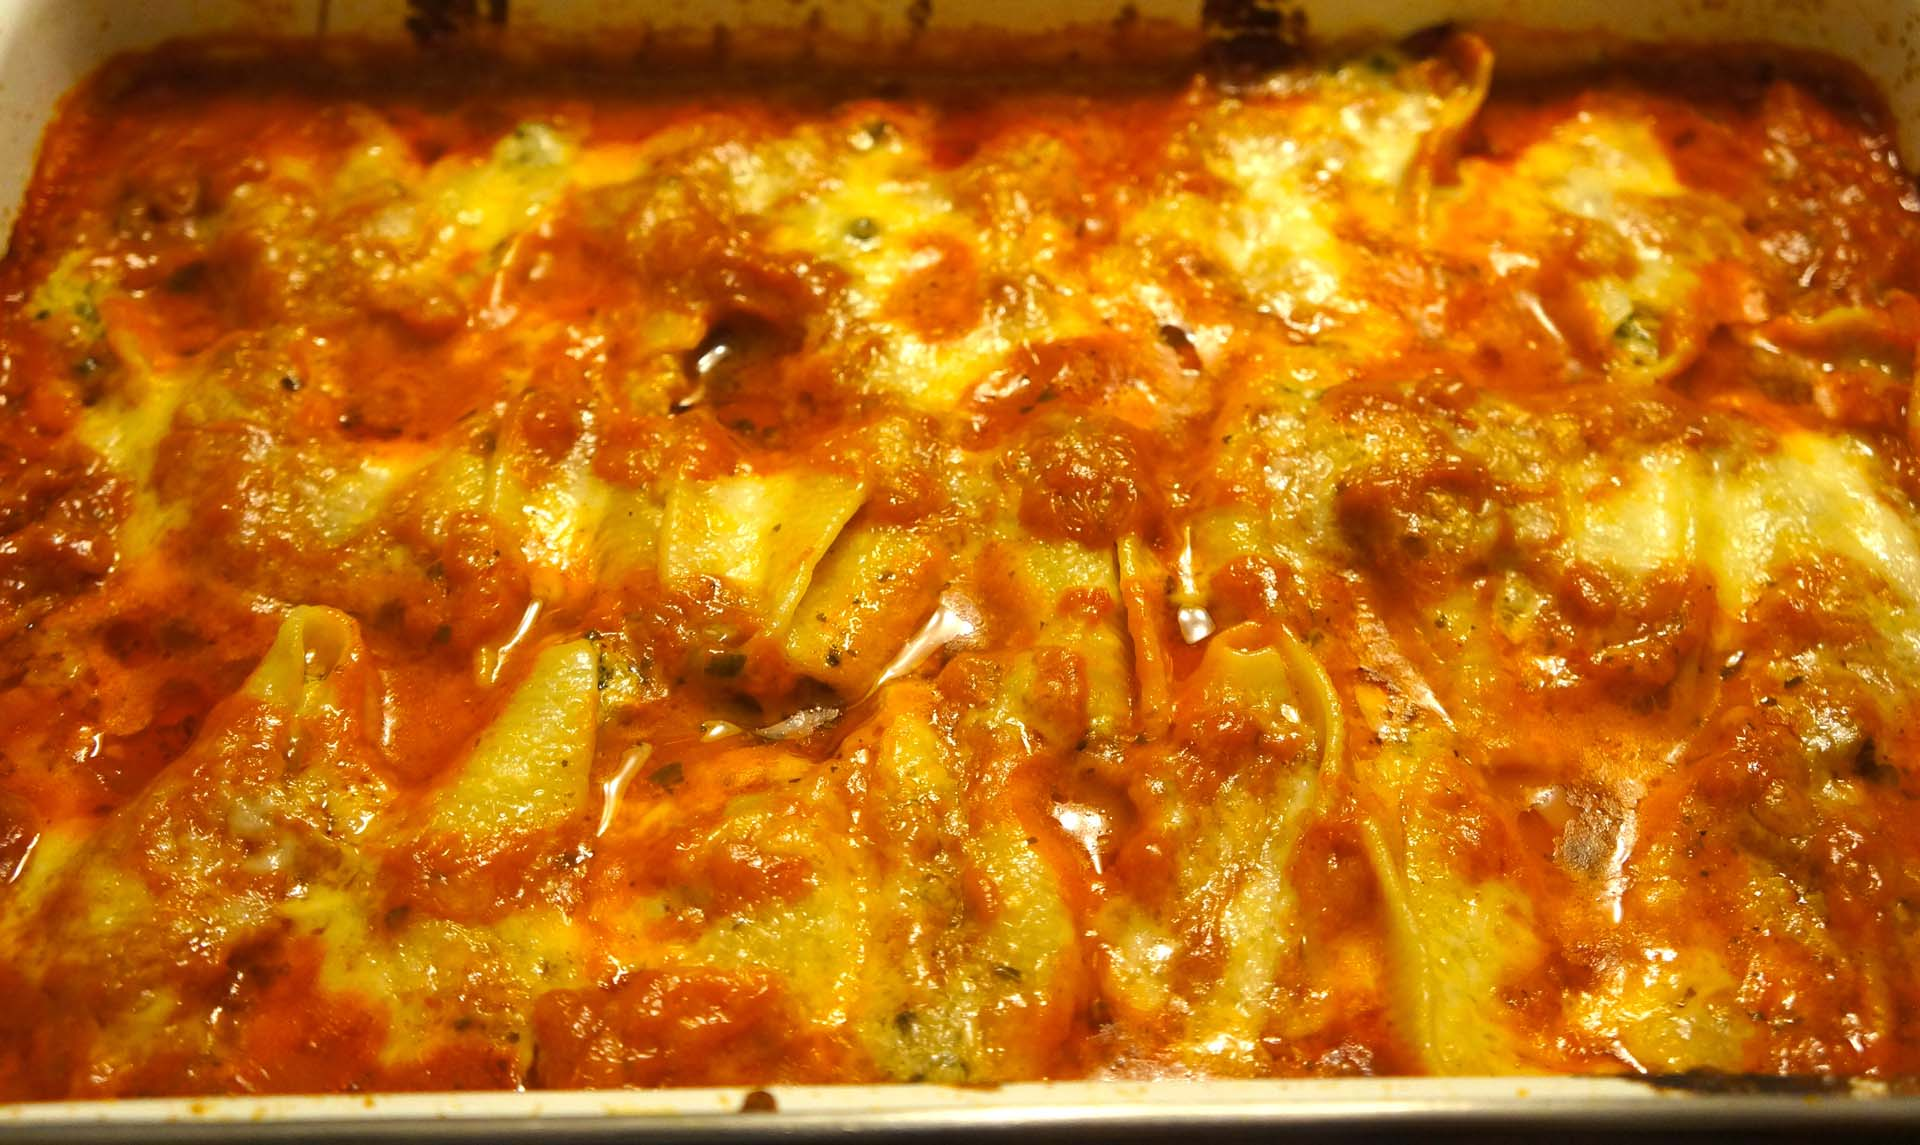 Baked Stuffed Shells with Portobello Mushrooms